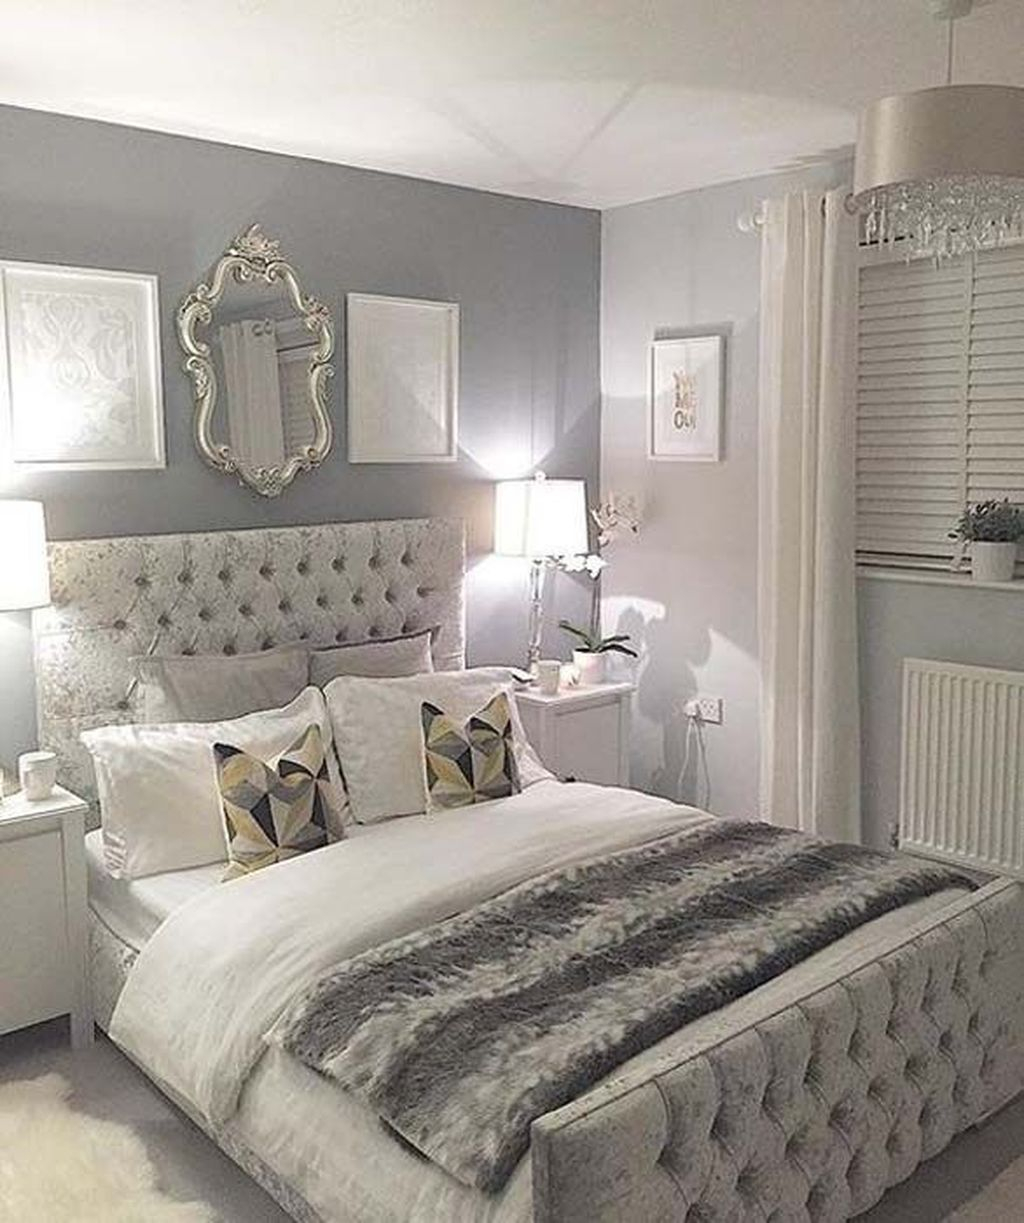 Modern Small Master Bedroom On A Budget 37